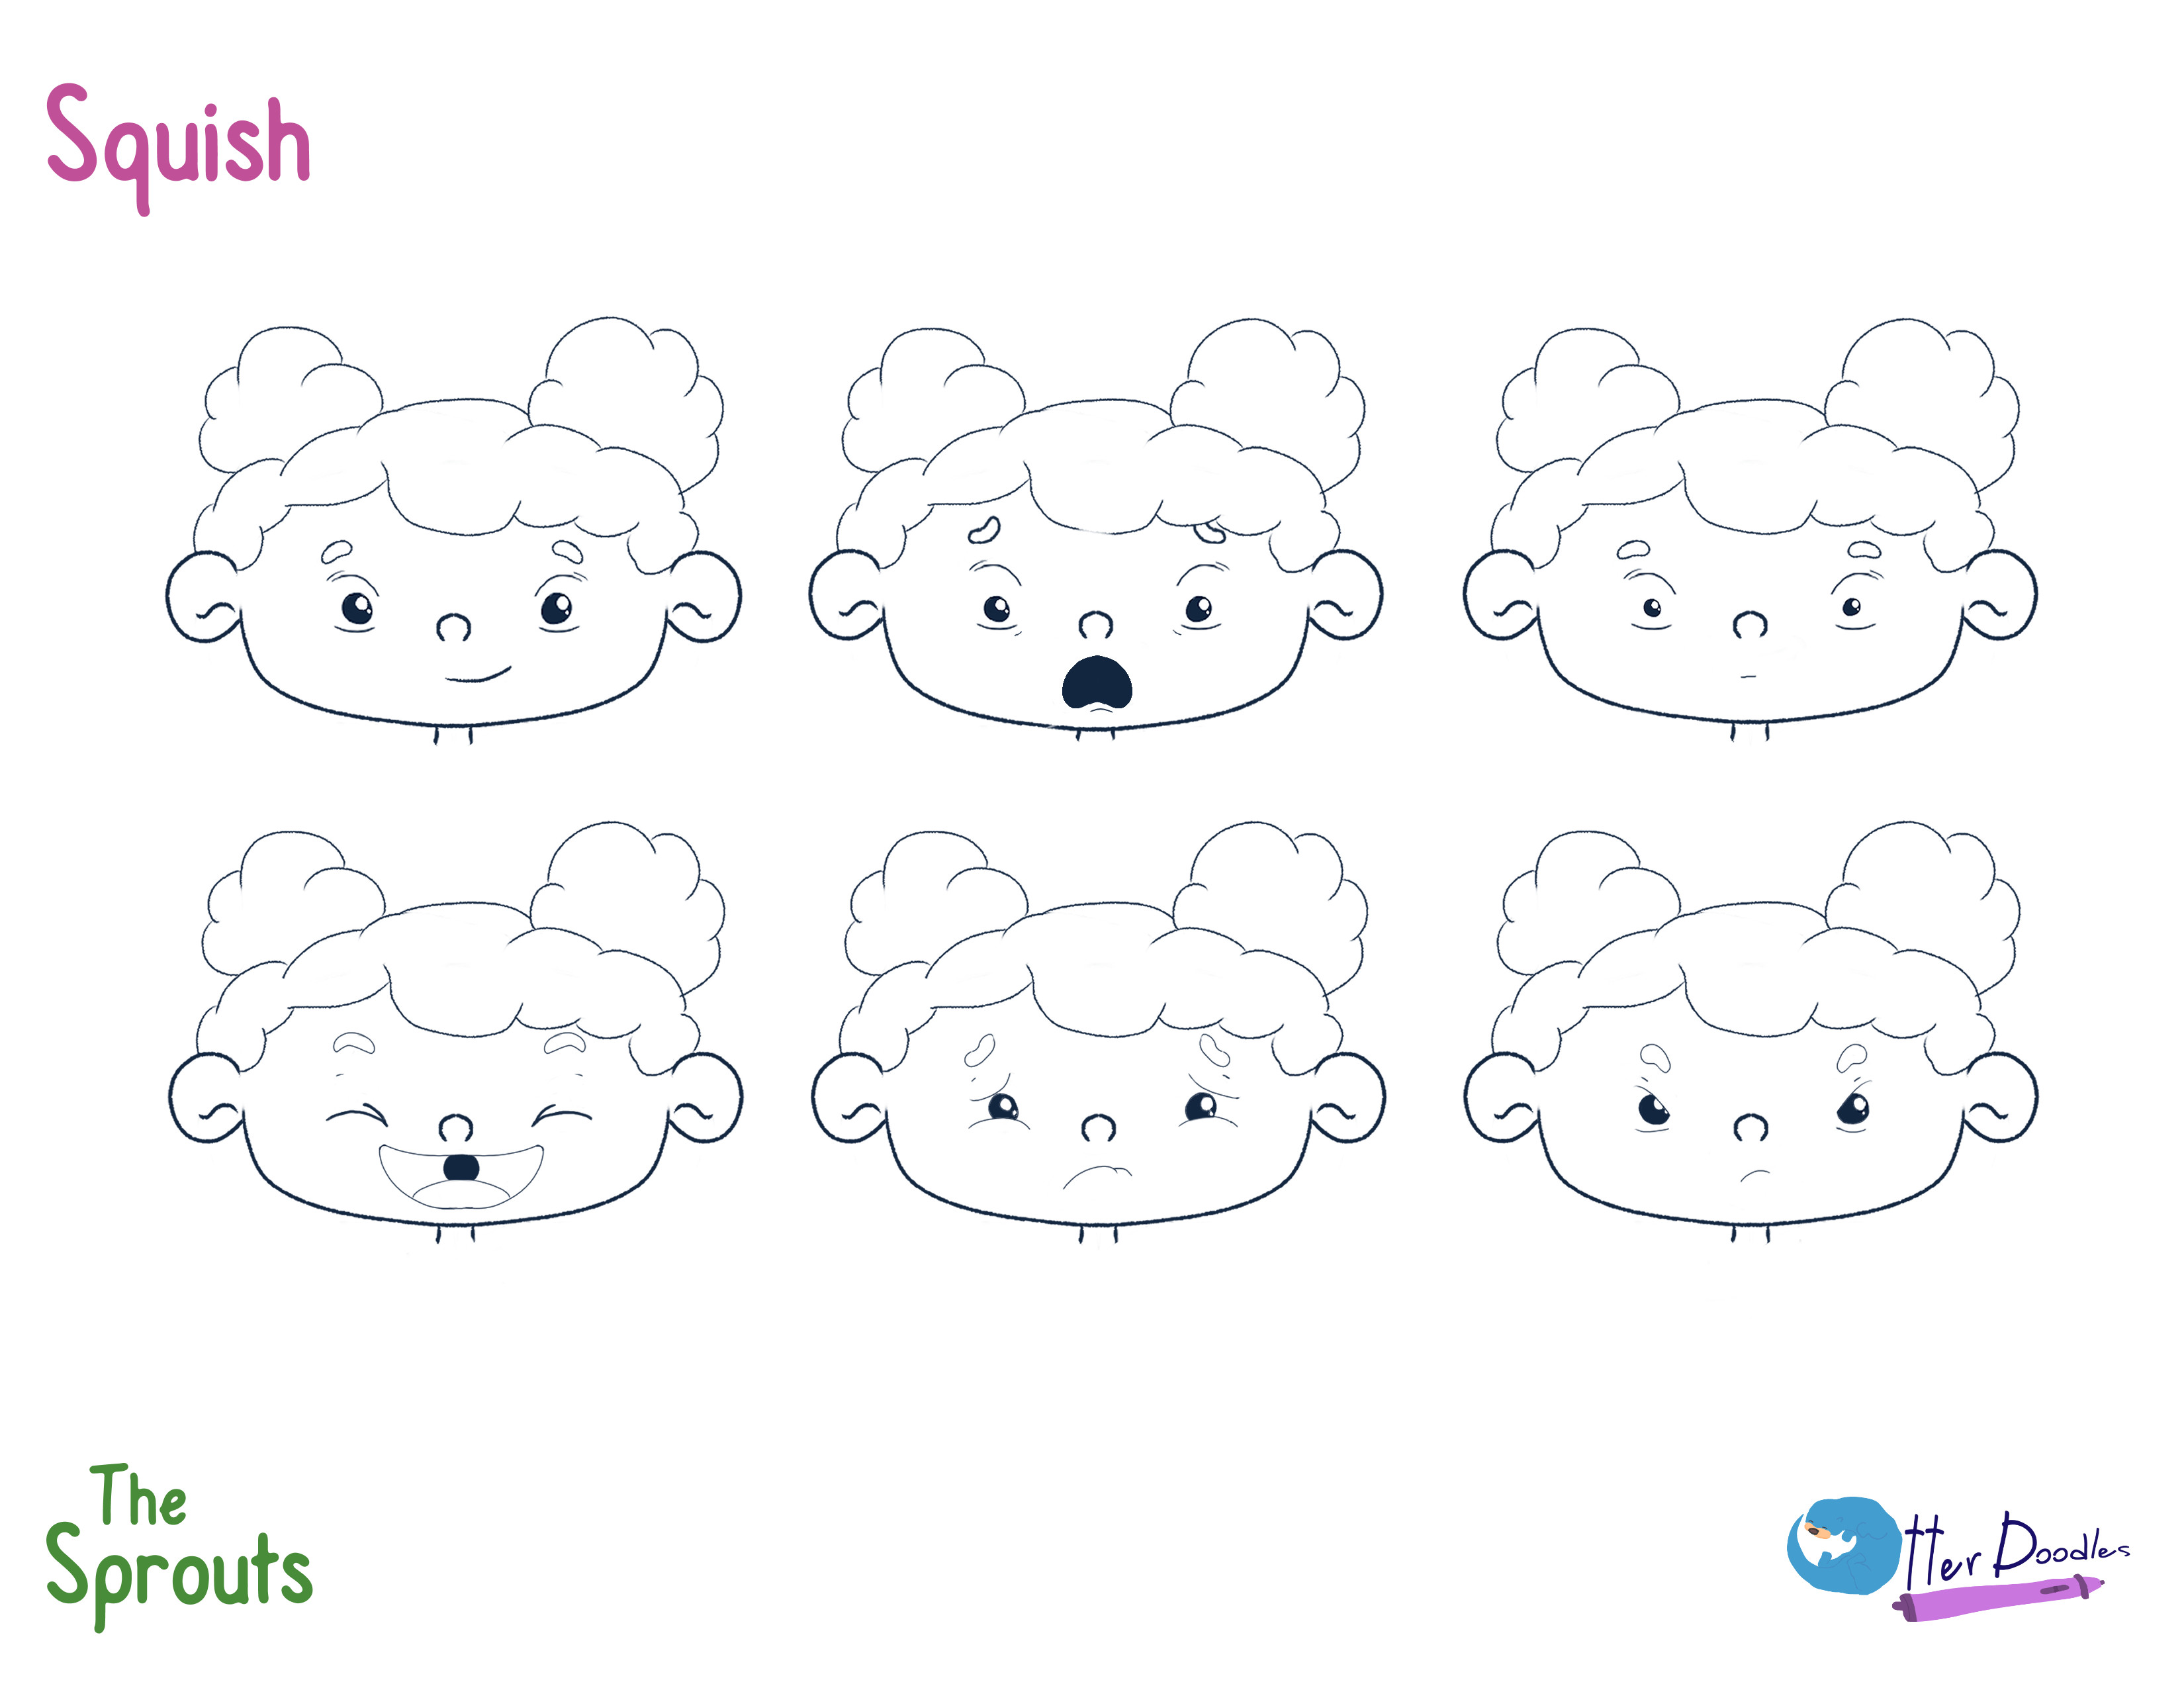 The Sprouts: Squish Expressions Model Sheet